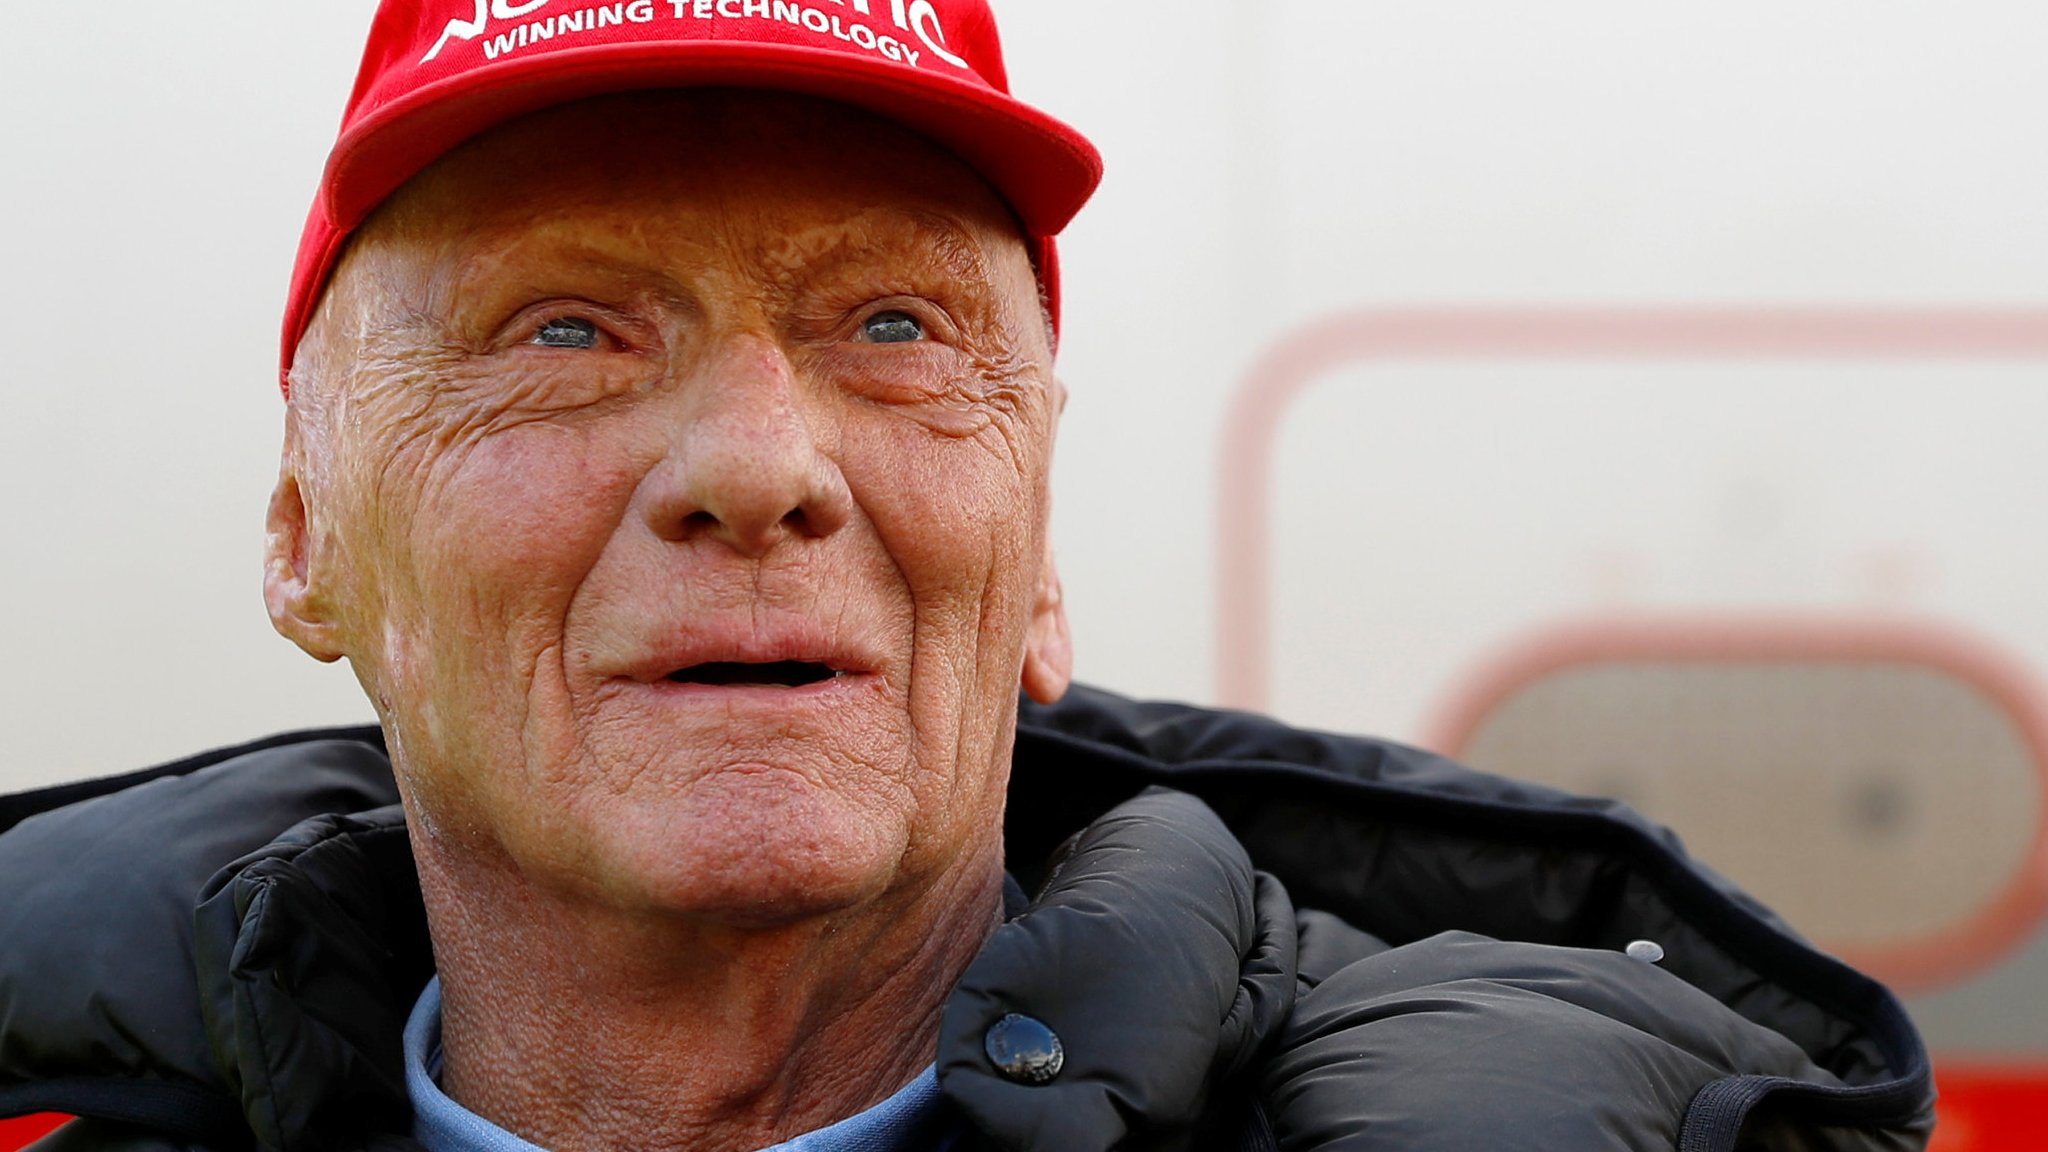 Niki Lauda: Former F1 world champion released from hospital after lung problems